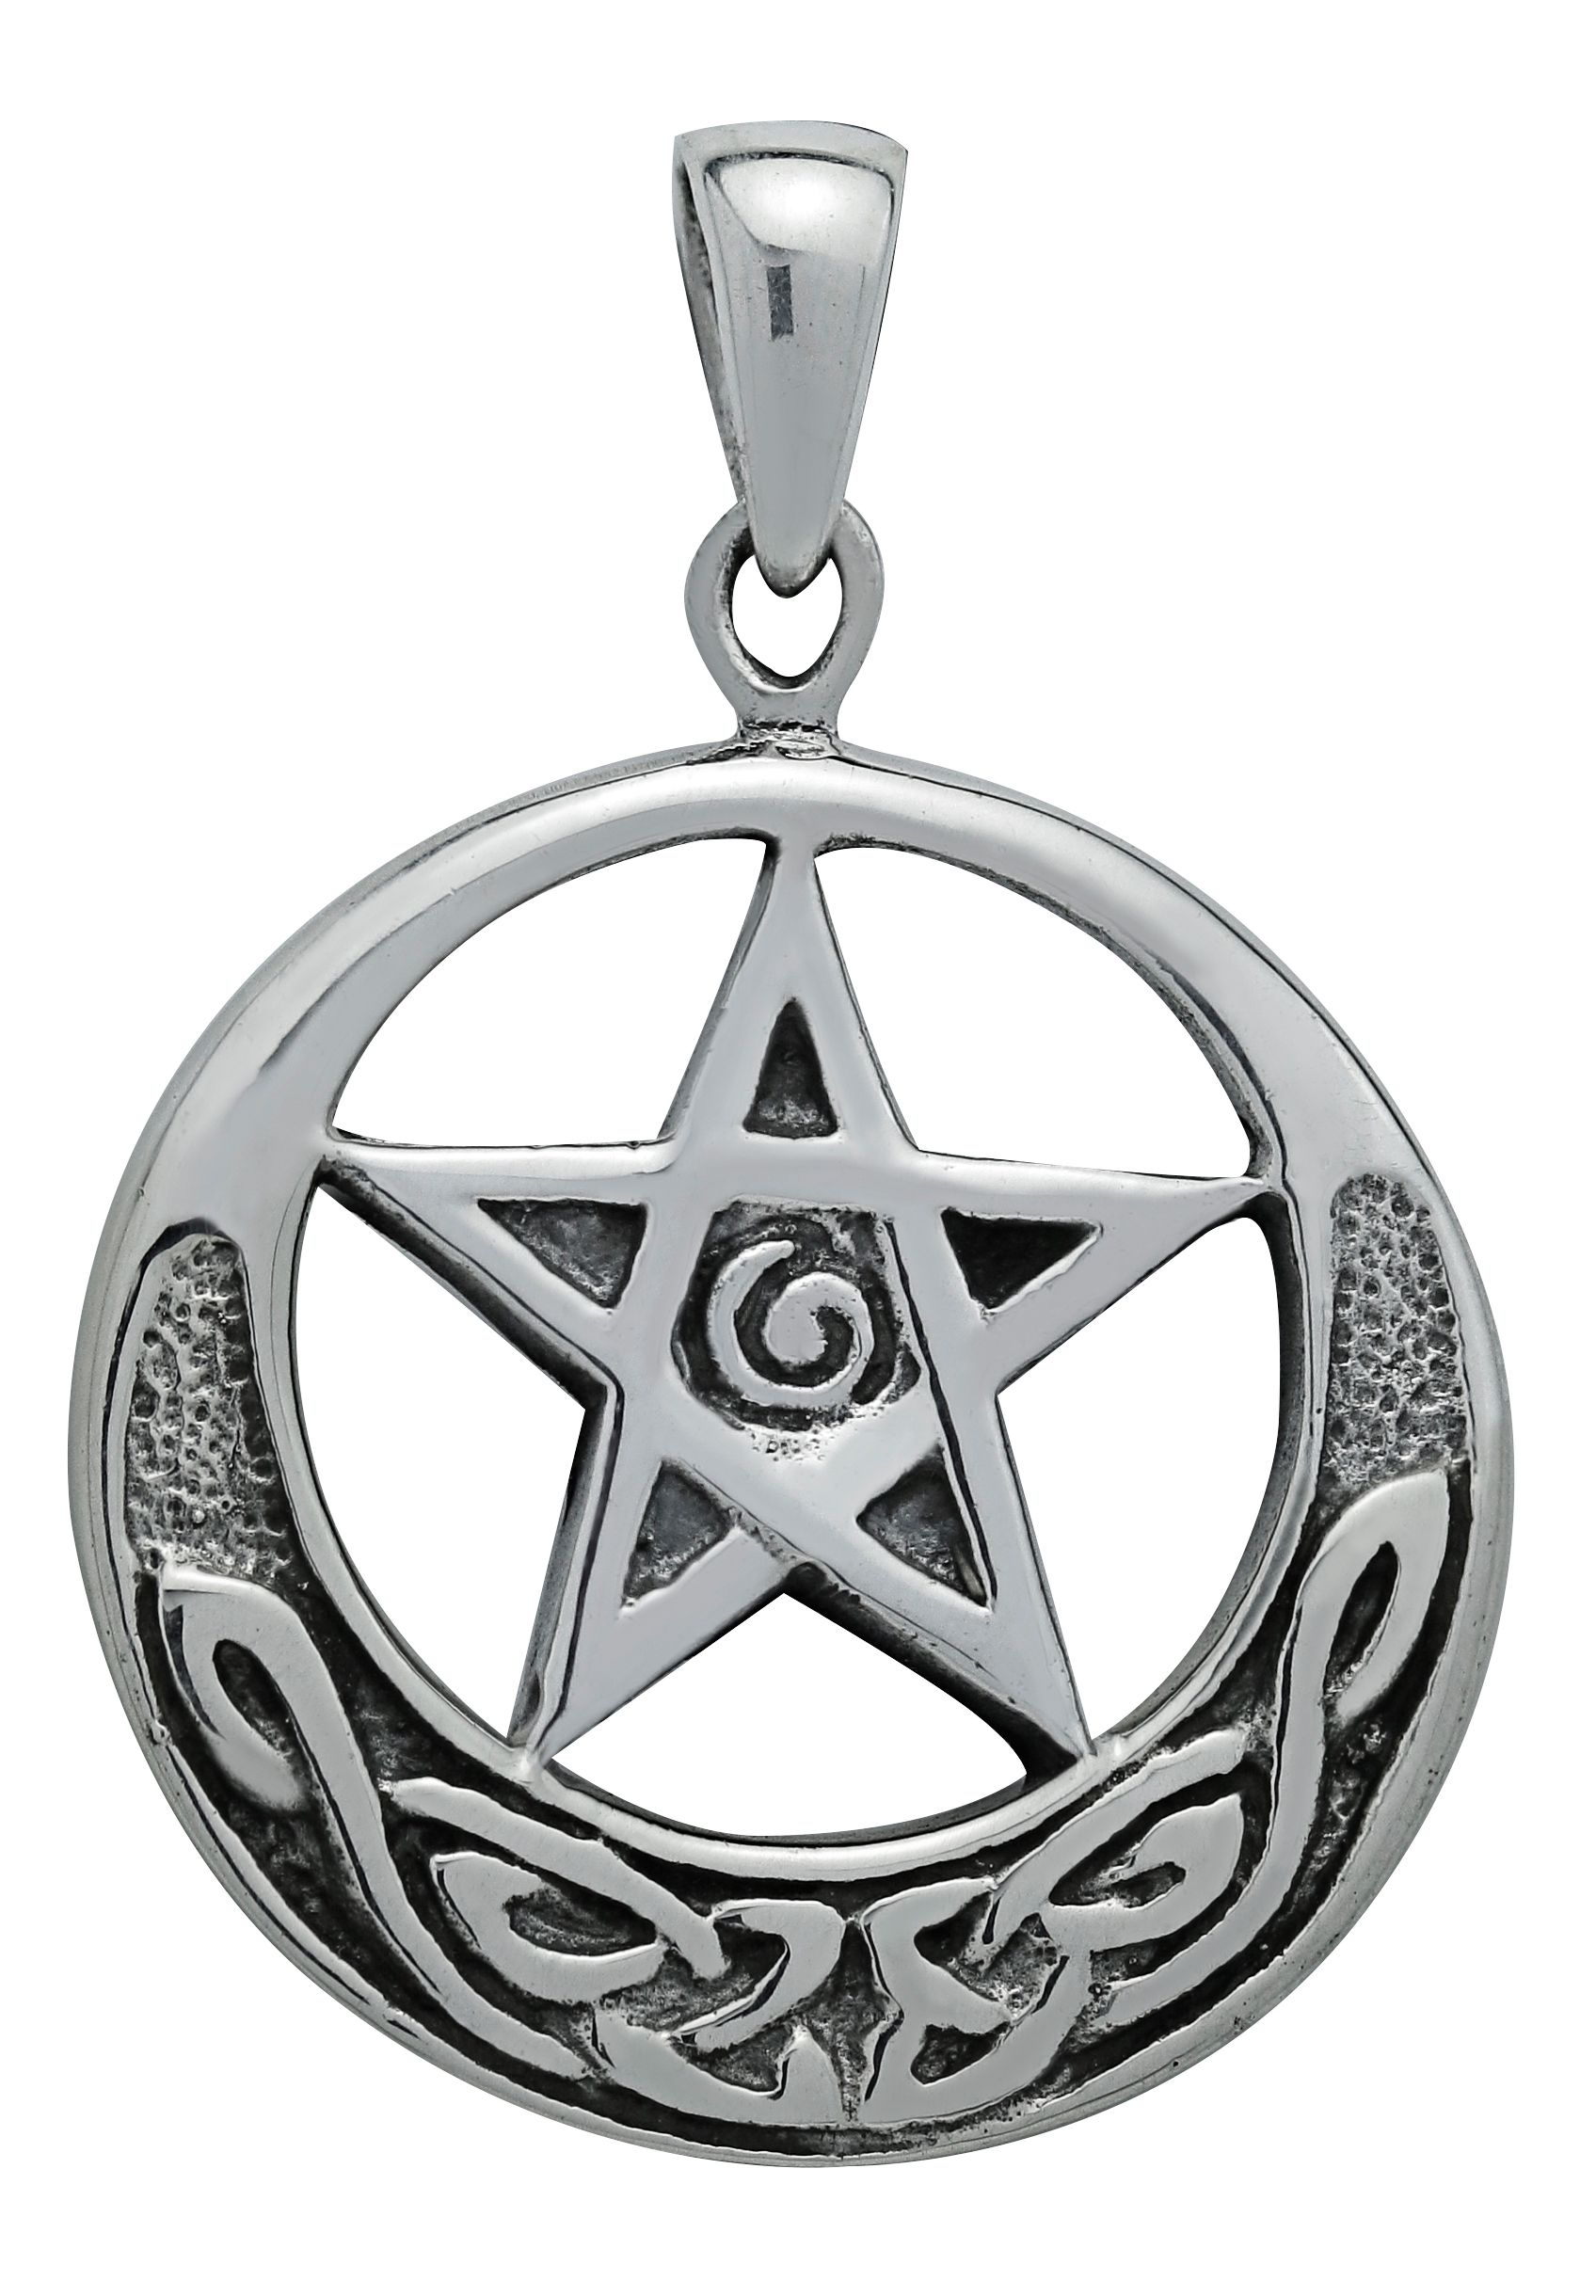 pin wheel hecate of necklace crystal pagan symbol goddess moon jewellery pendant